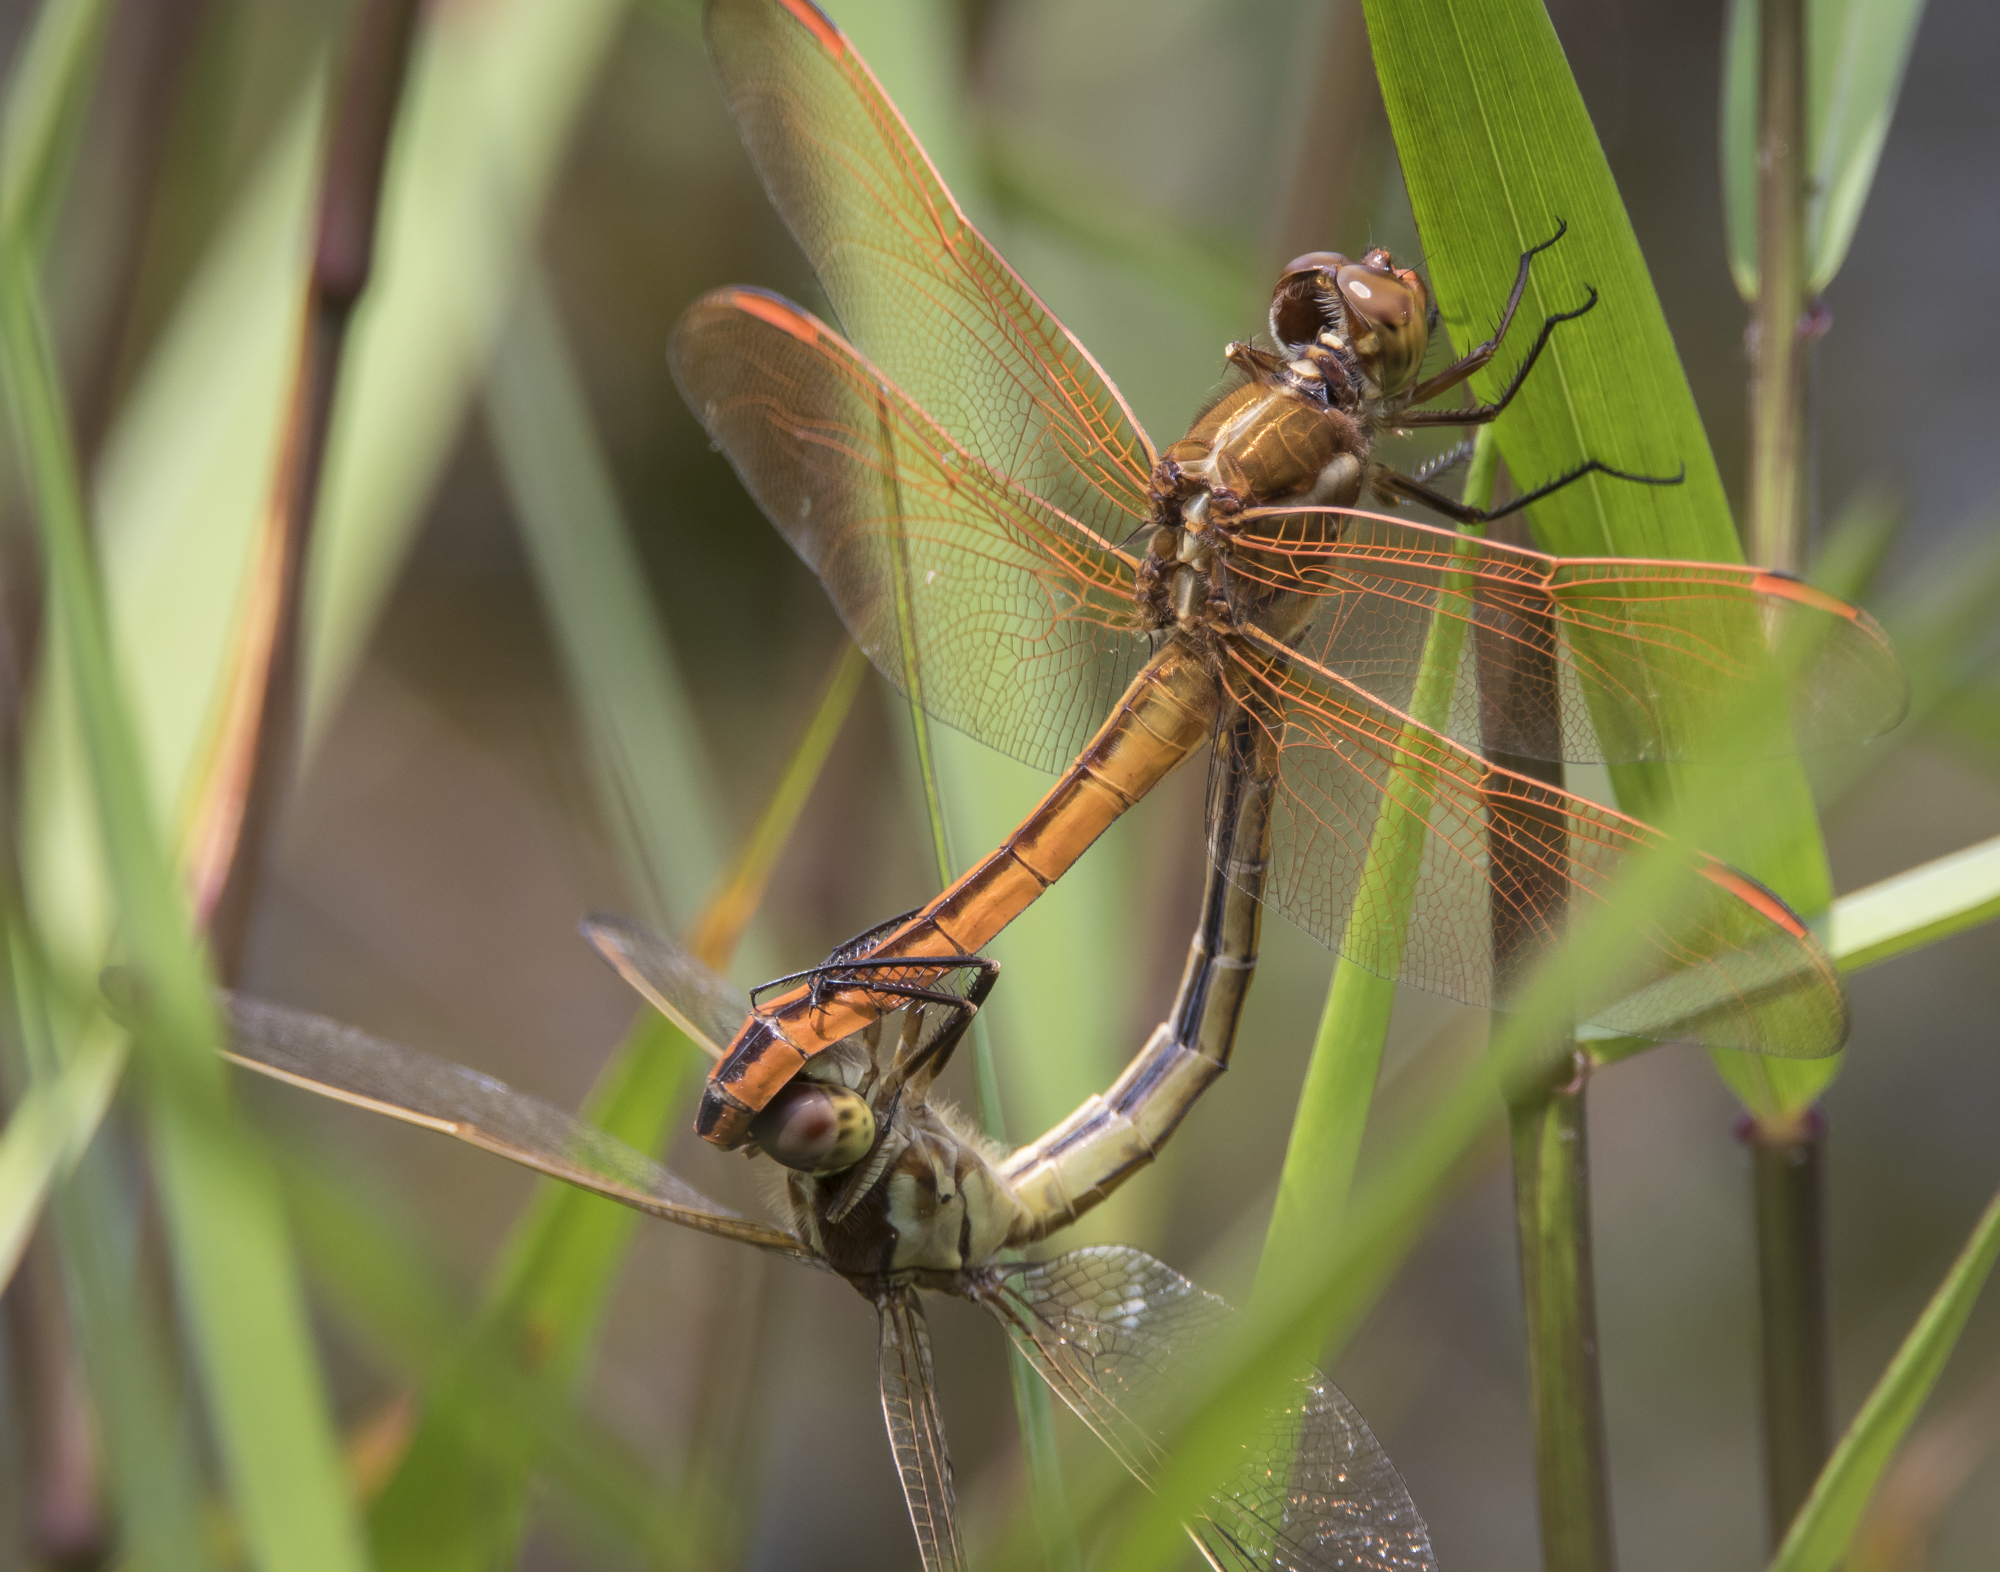 Golden-winged skimmers in wheel position